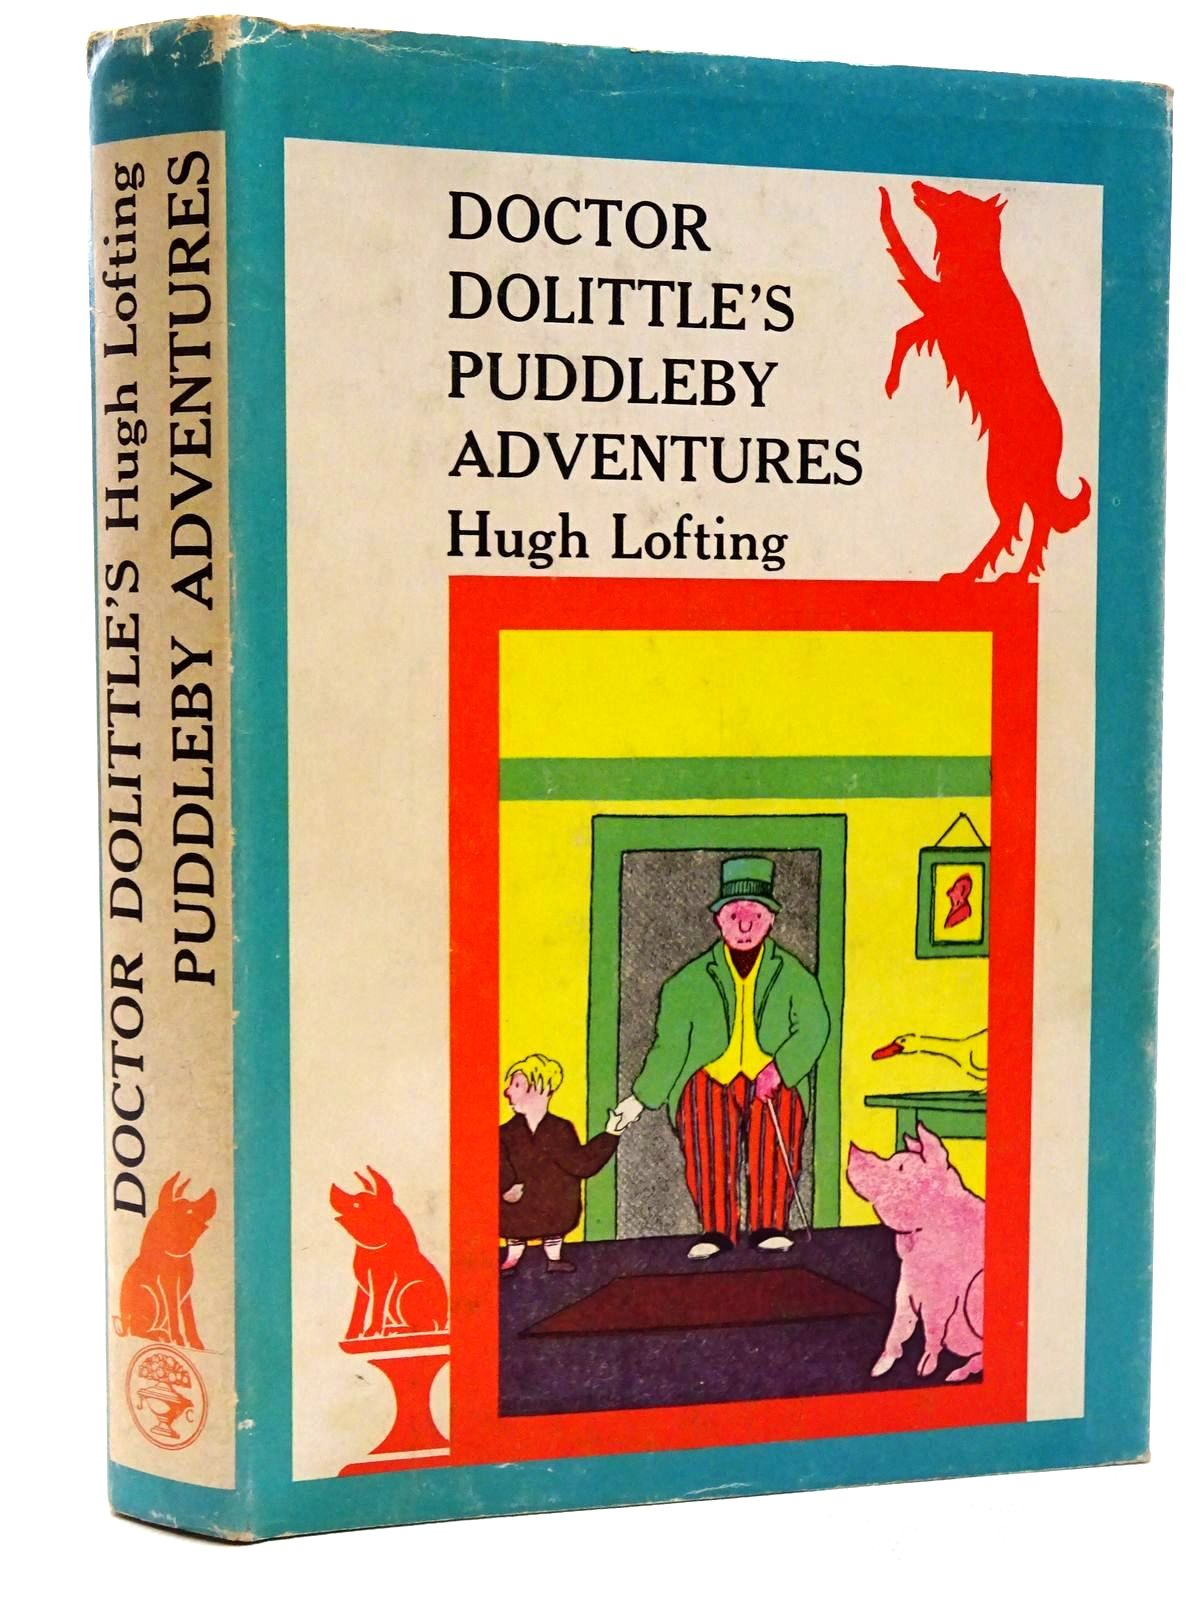 Photo of DOCTOR DOLITTLE'S PUDDLEBY ADVENTURES written by Lofting, Hugh illustrated by Lofting, Hugh published by Jonathan Cape (STOCK CODE: 2124441)  for sale by Stella & Rose's Books